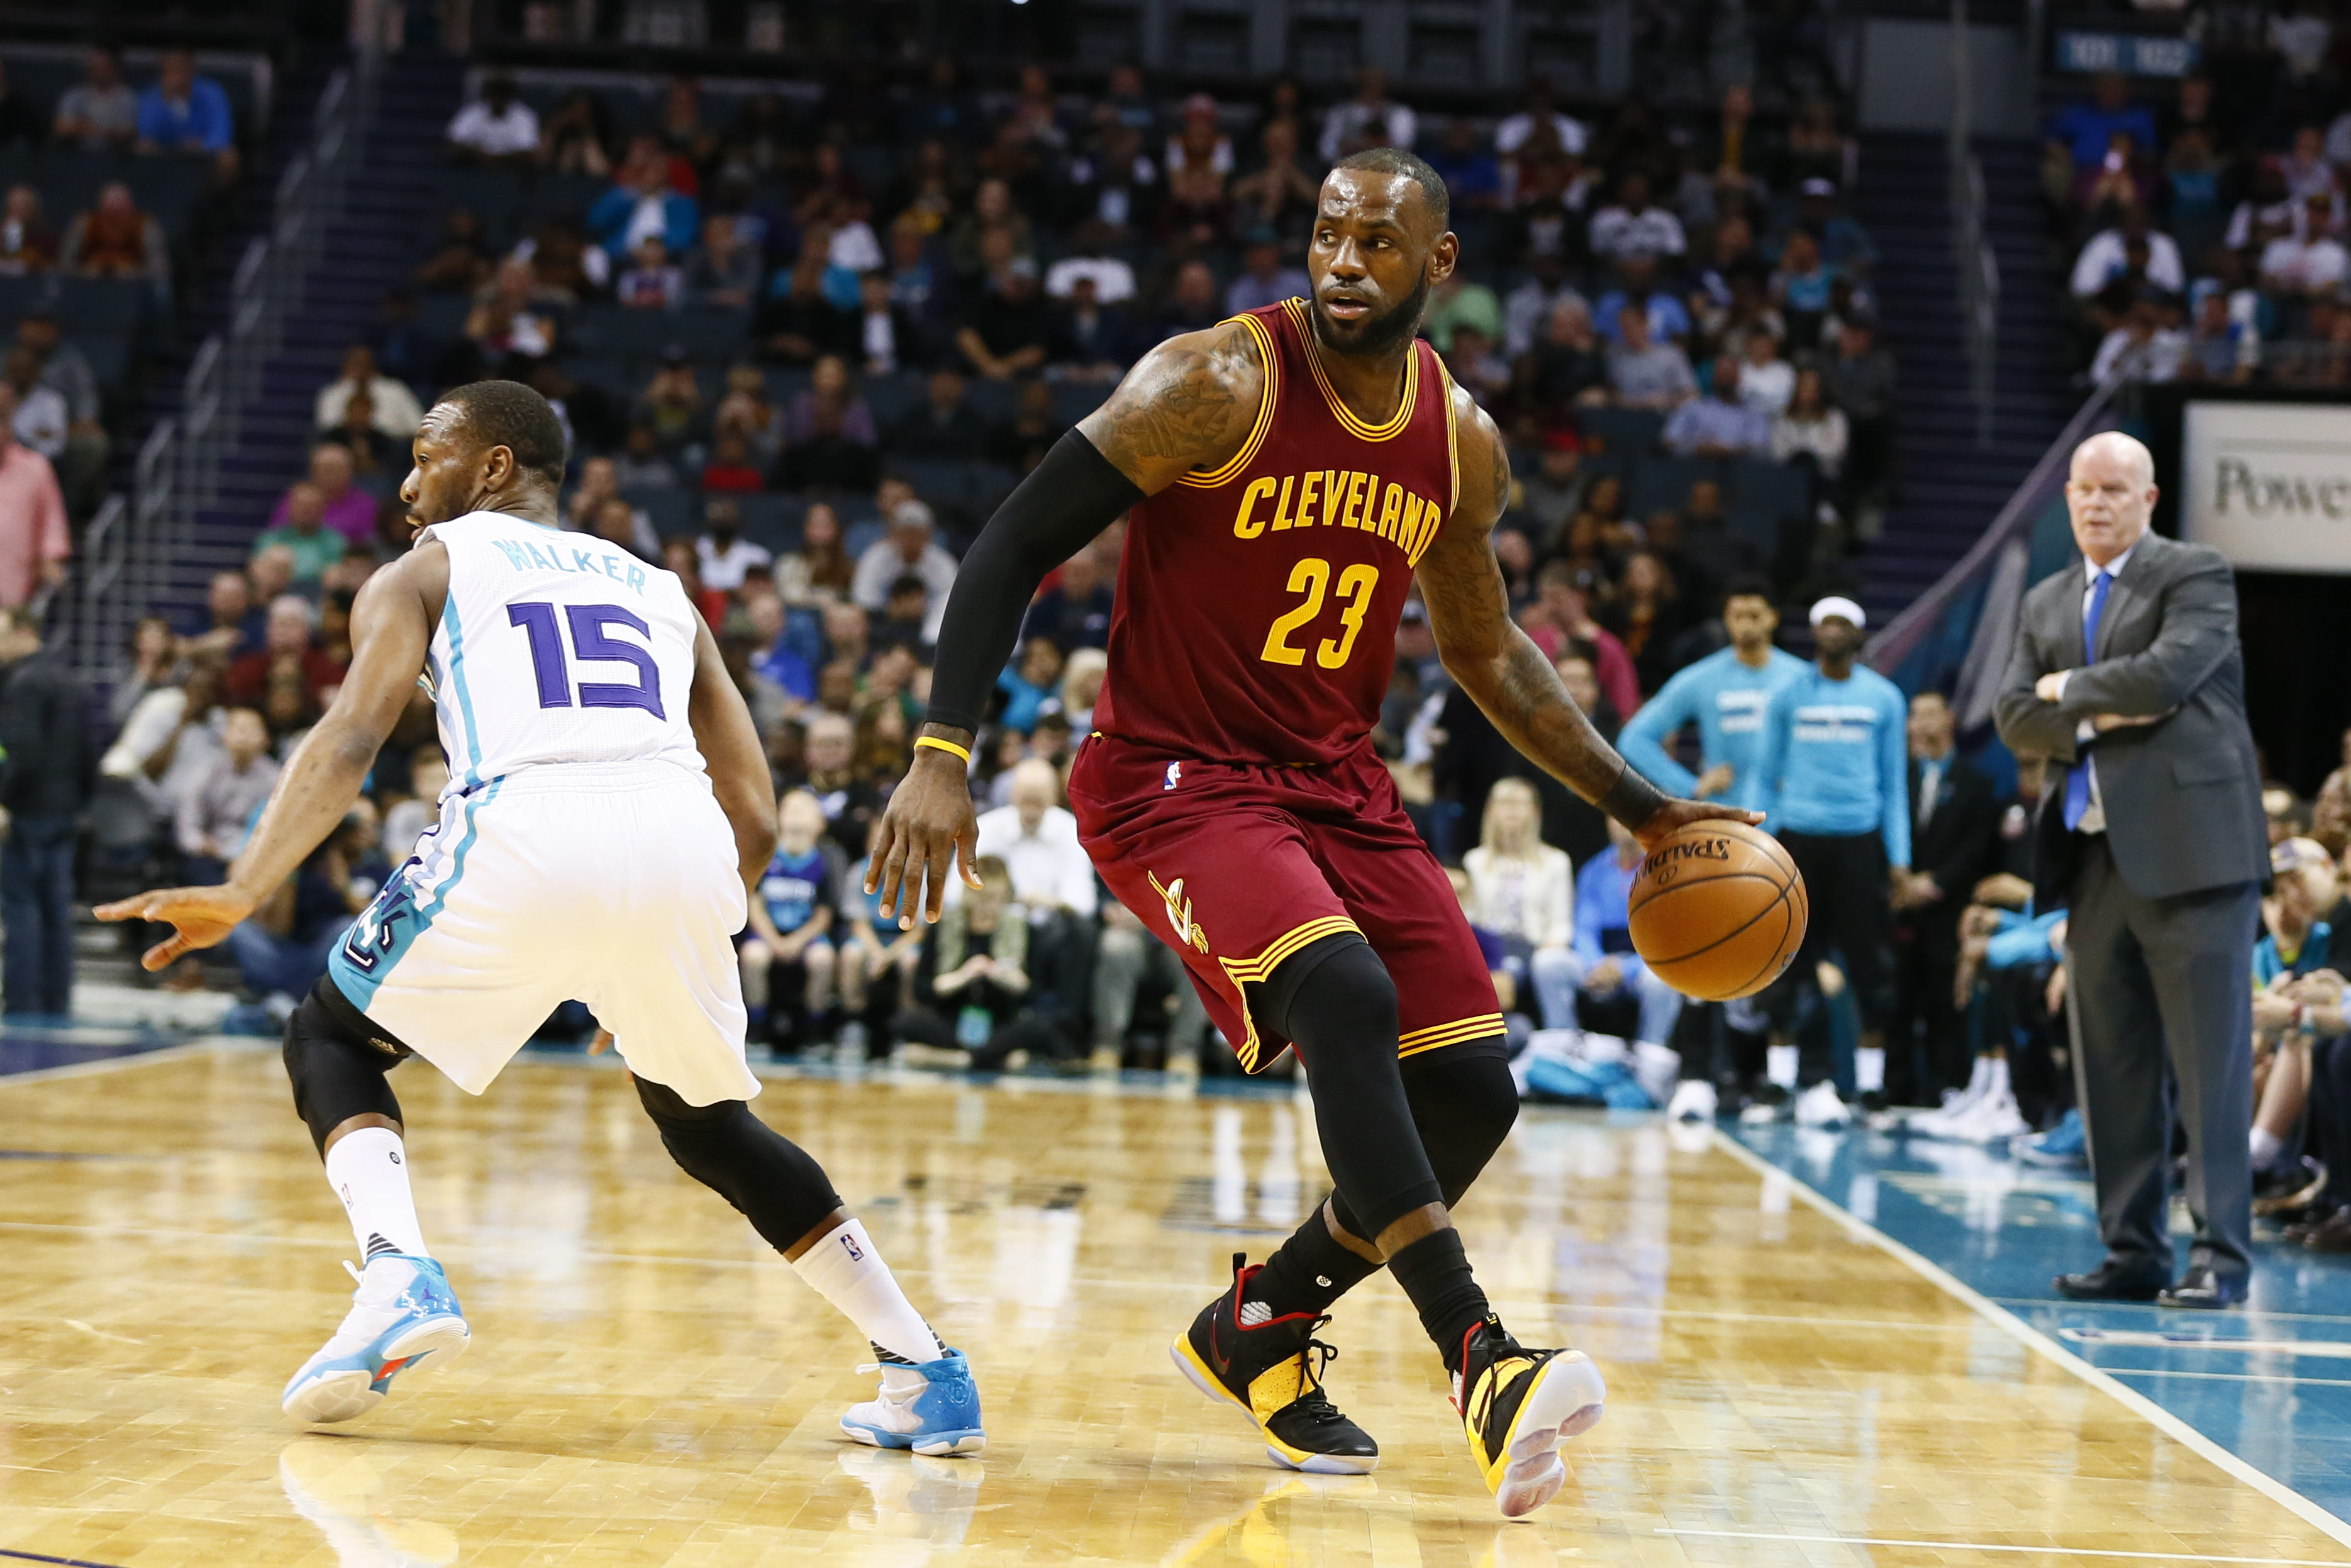 9967963-nba-cleveland-cavaliers-at-charlotte-hornets